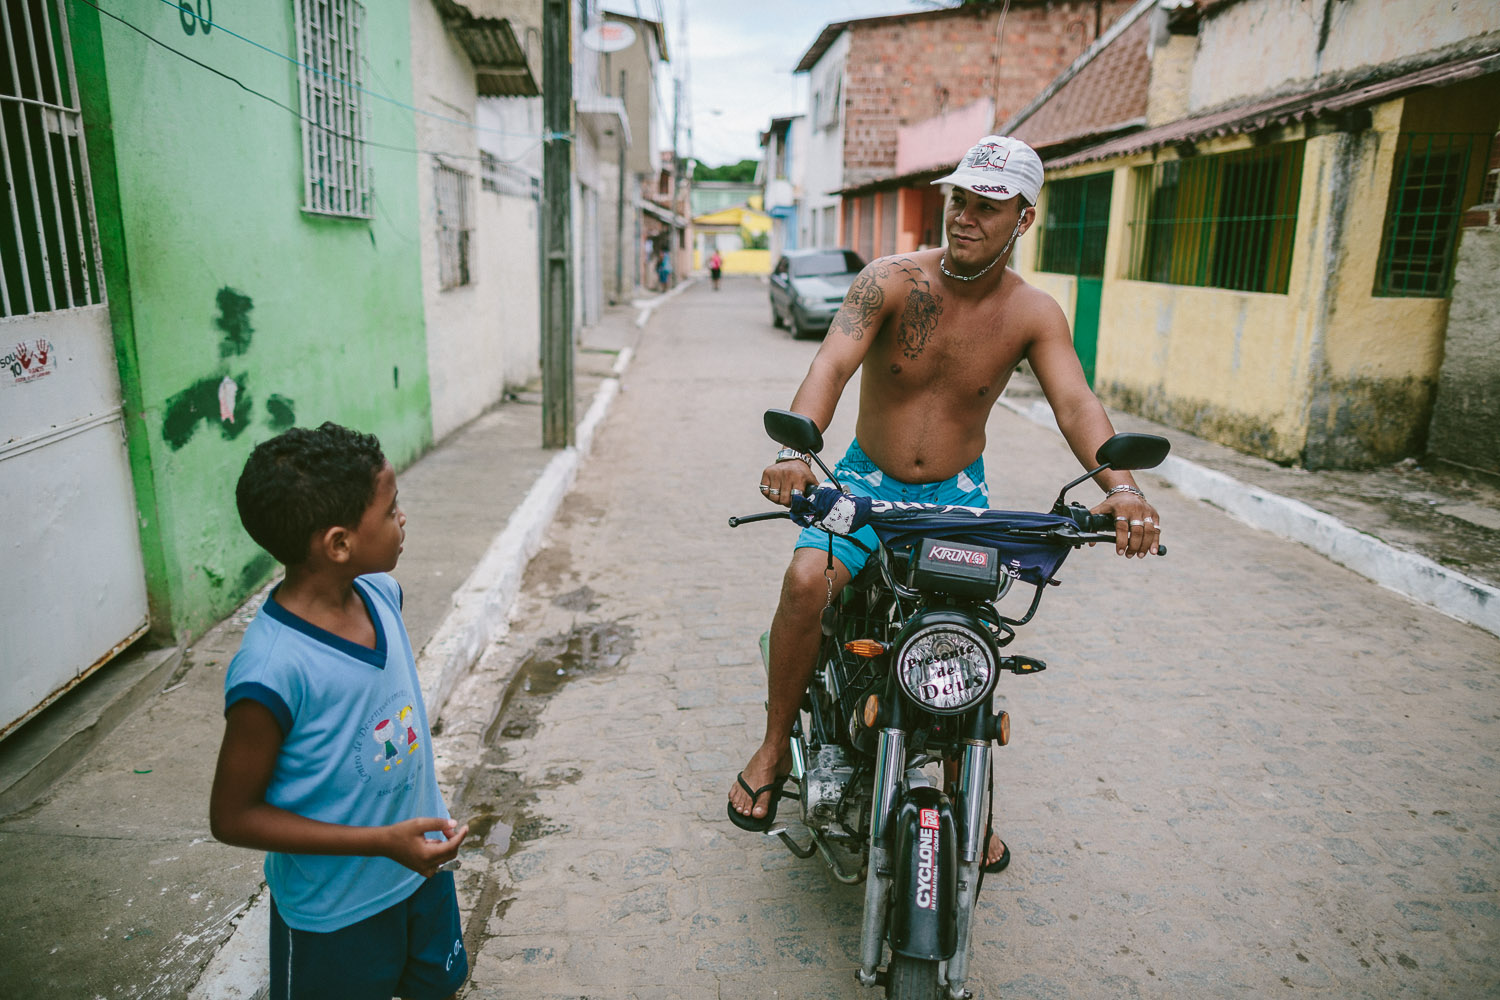 """On the way home, Emidio runs into another family friend whom he calls uncle. After his time at the Compassion Center, Emidio walks to his """"aunt's"""" house (family friend---no relation) to be taken care of before heading to school since his mother works until 10pm each night."""